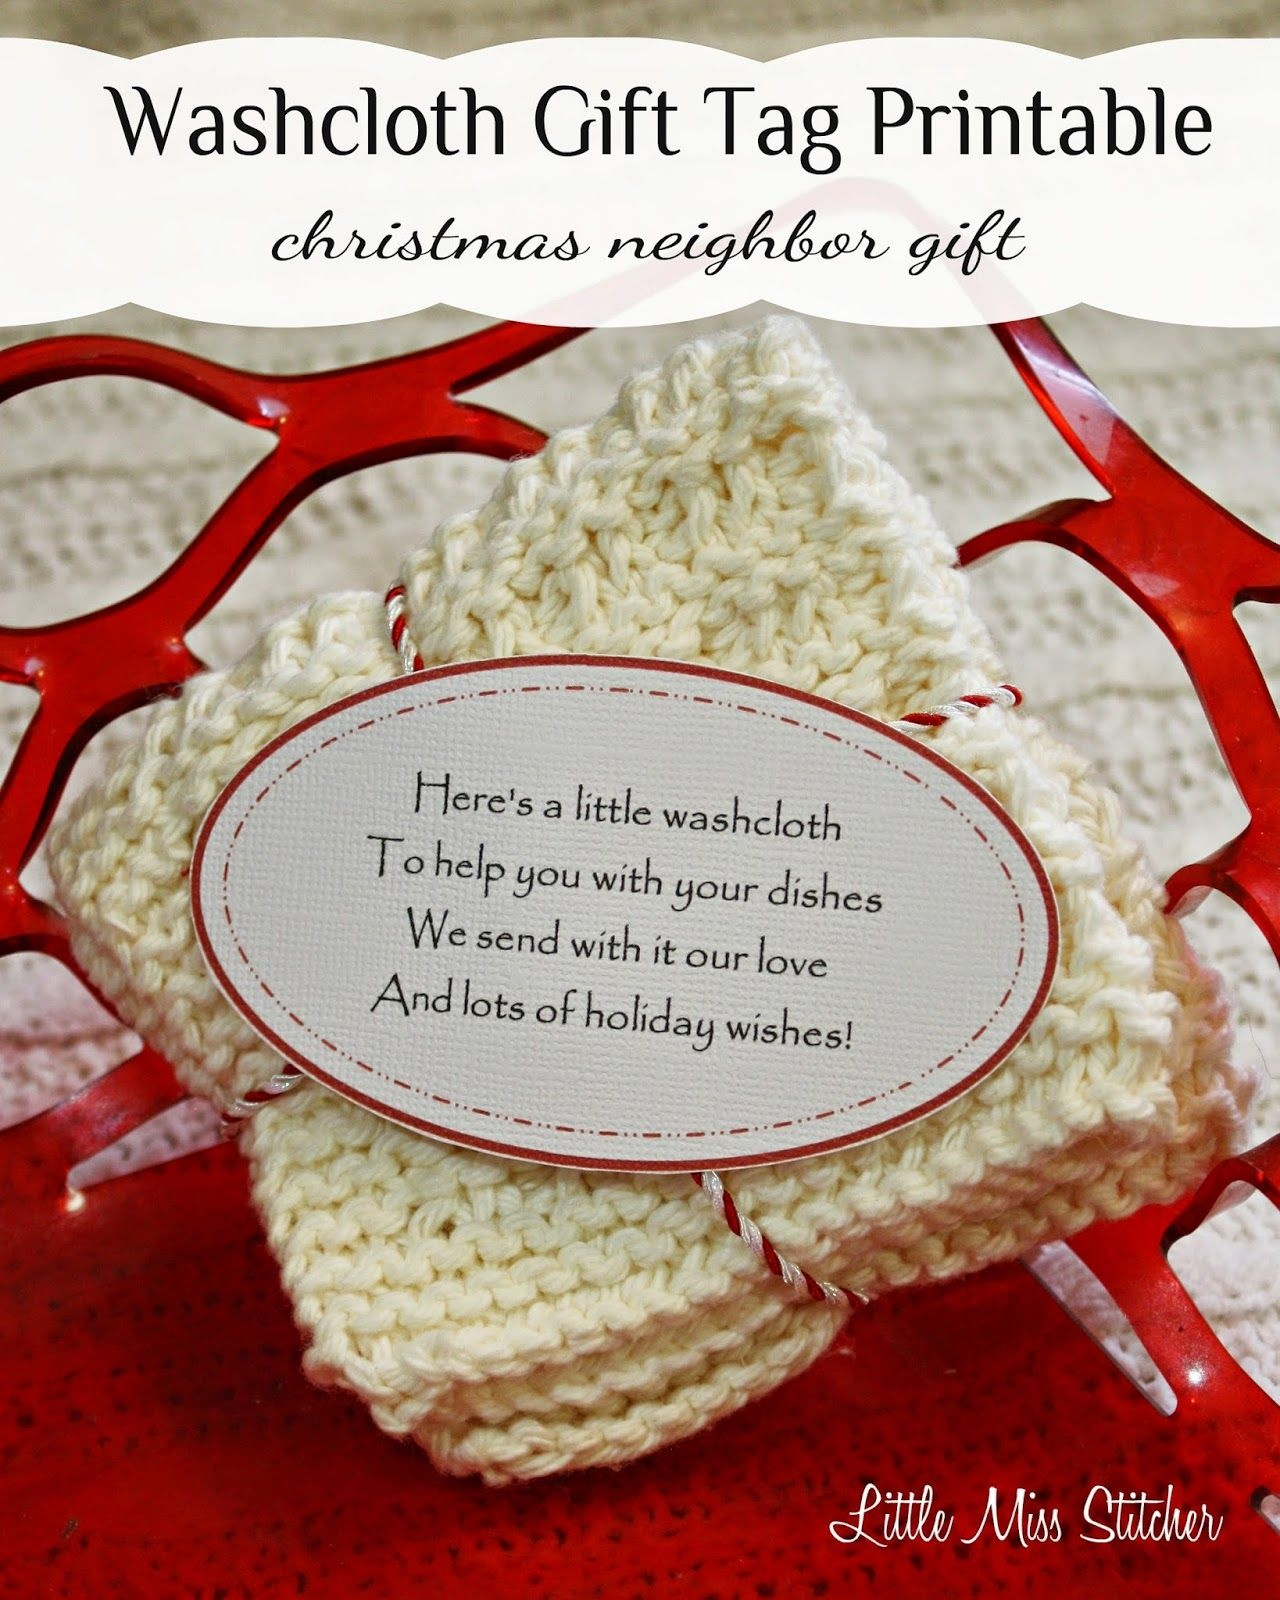 Washcloth Gift Idea For Christmas.the Cute Poem On These Free - Free Printable Dishcloth Wrappers